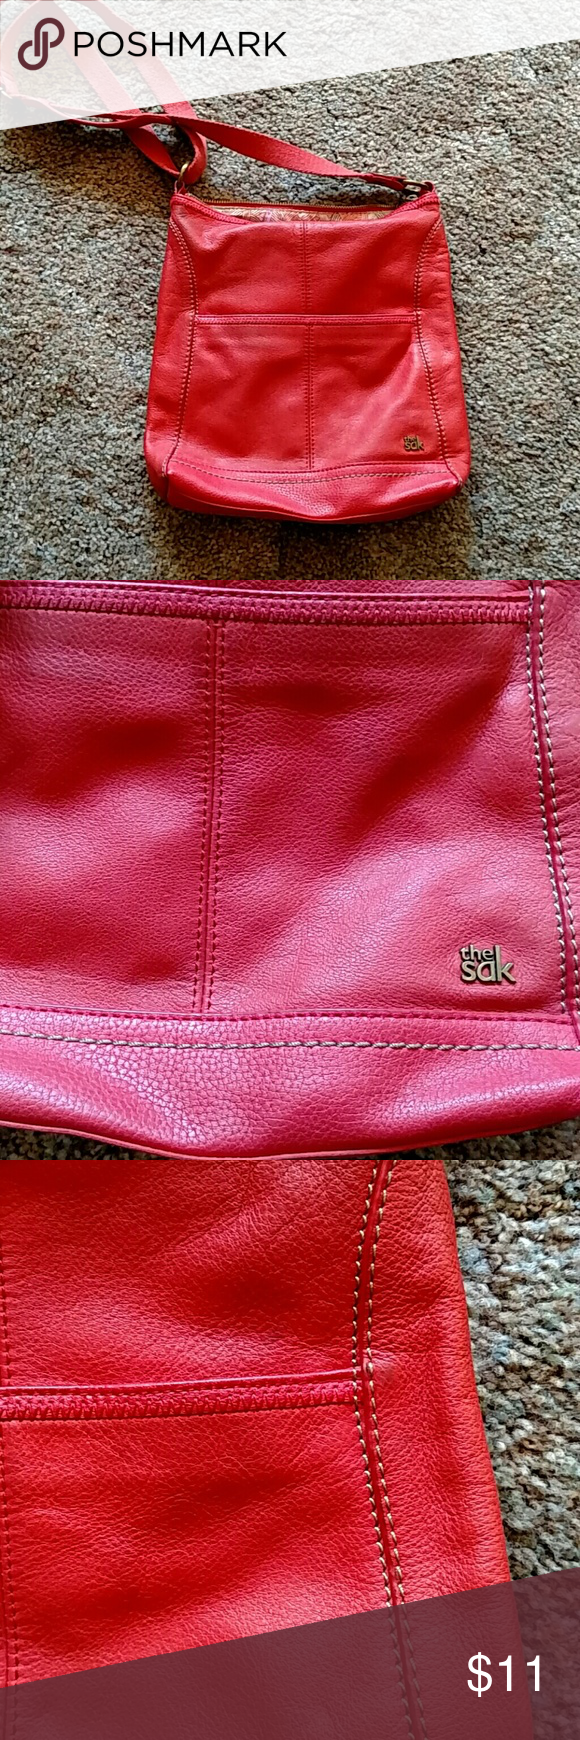 The Sak  purse Gently worn.  Lining has tearing on outer sections Bags Shoulder Bags